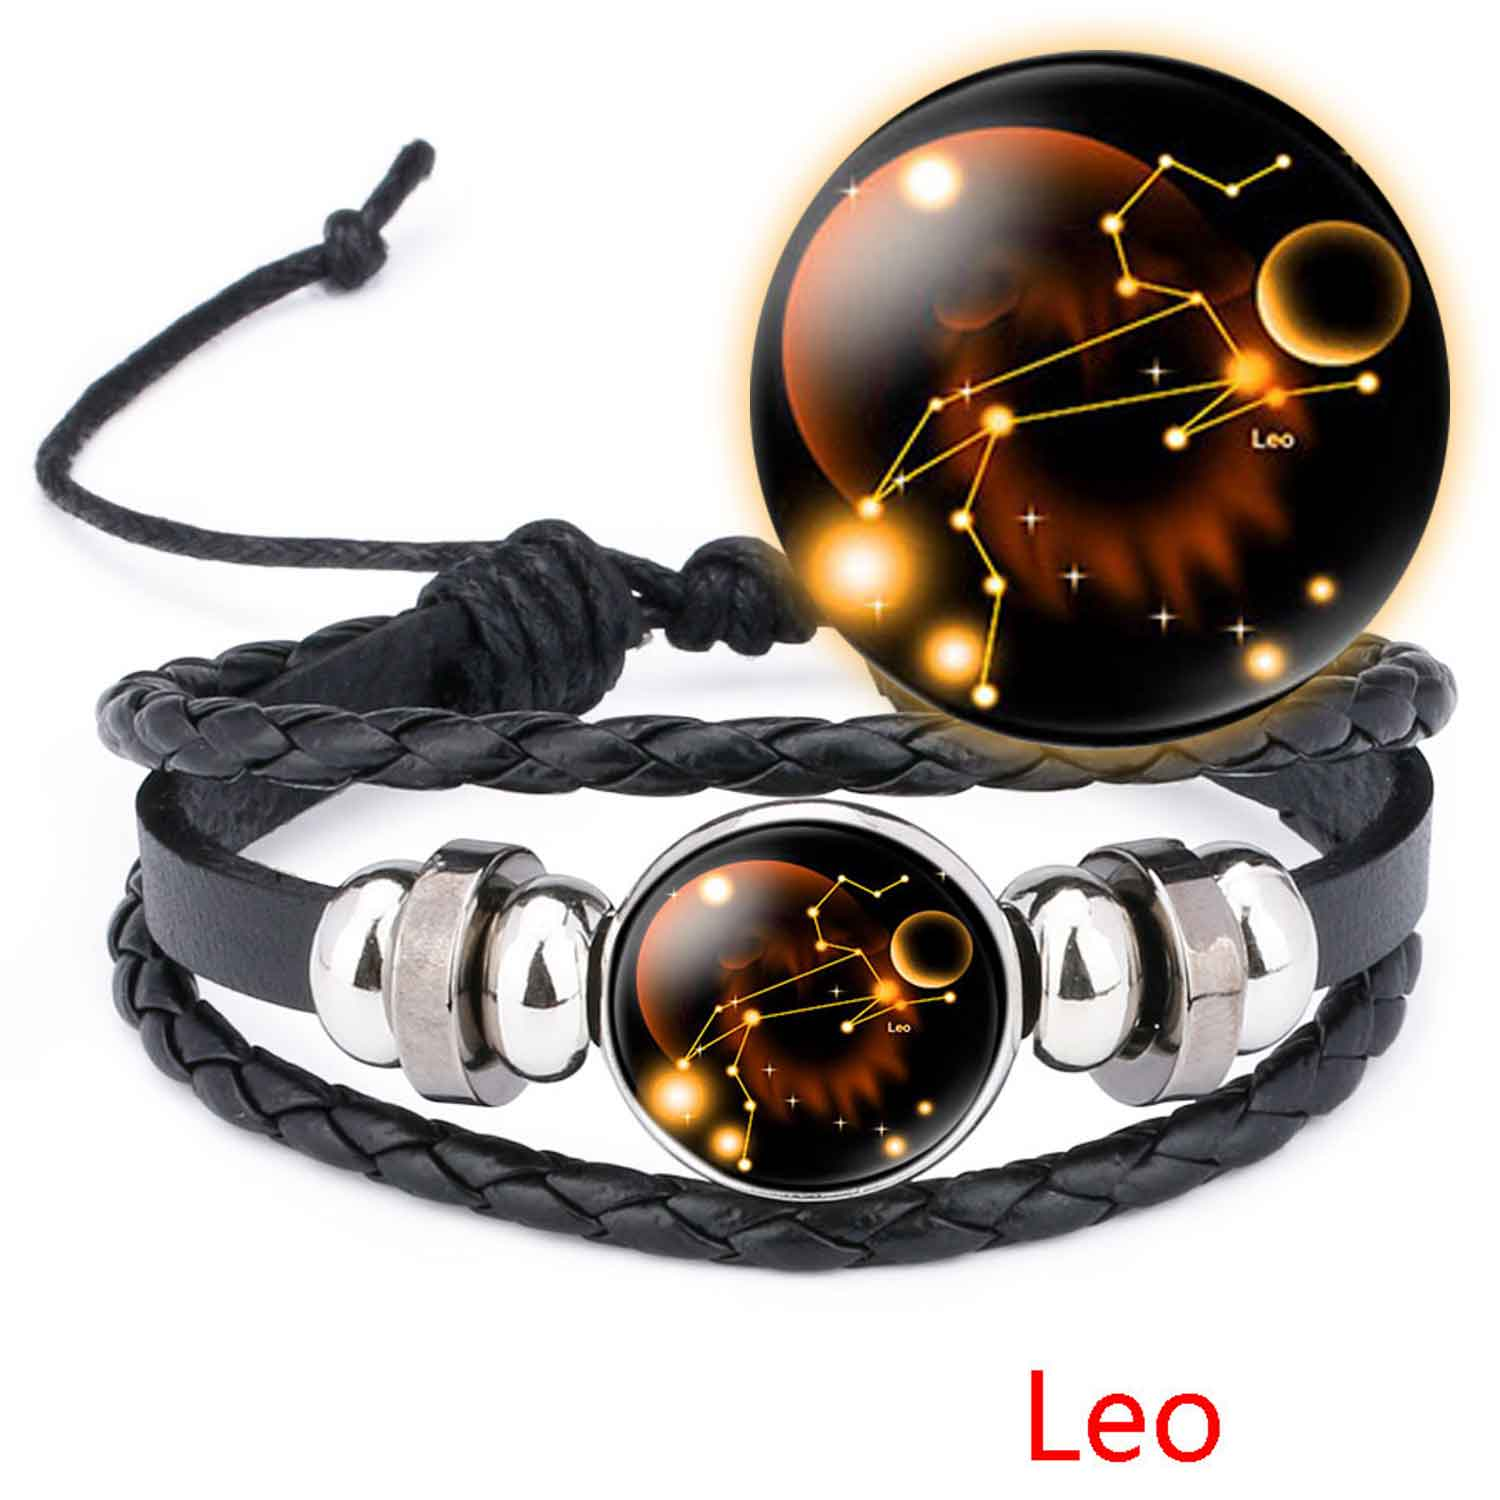 The Courageous Leo Bracelet - GearBody